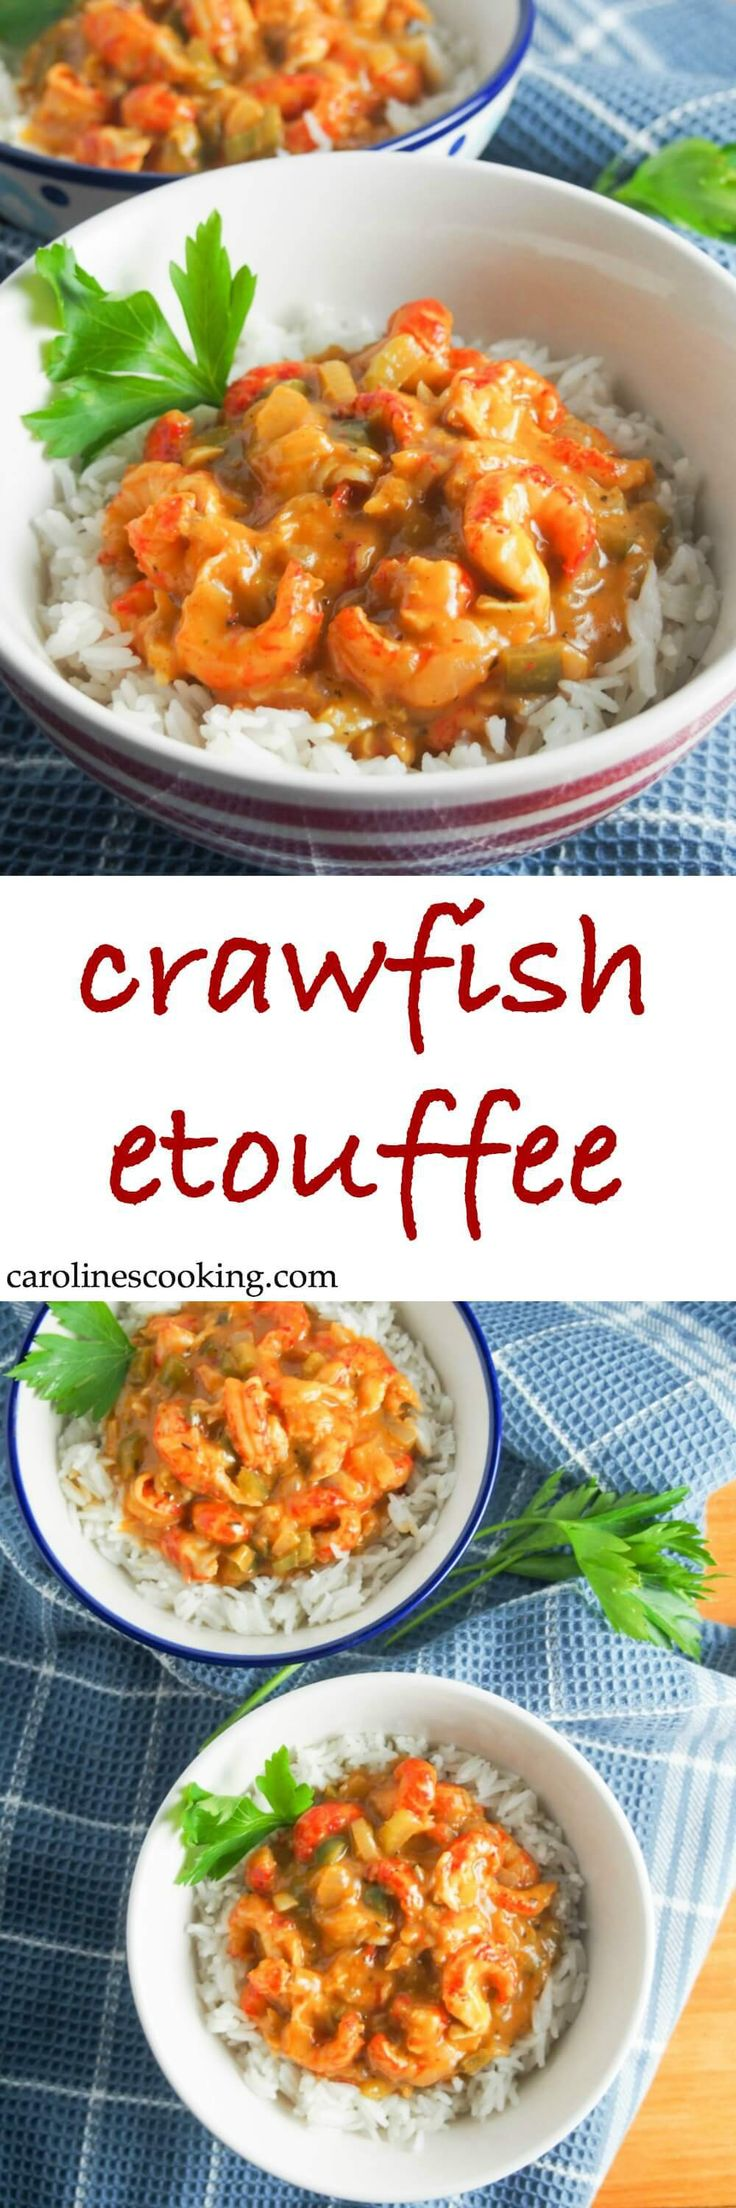 Crawfish etouffee is a classic Cajun stew - this version is lightened up & speeded up a little but still full of fantastic flavors. A comforting seafood stew, it's a delicious dinner whether as part of Mardi Gras celebrations or any time.